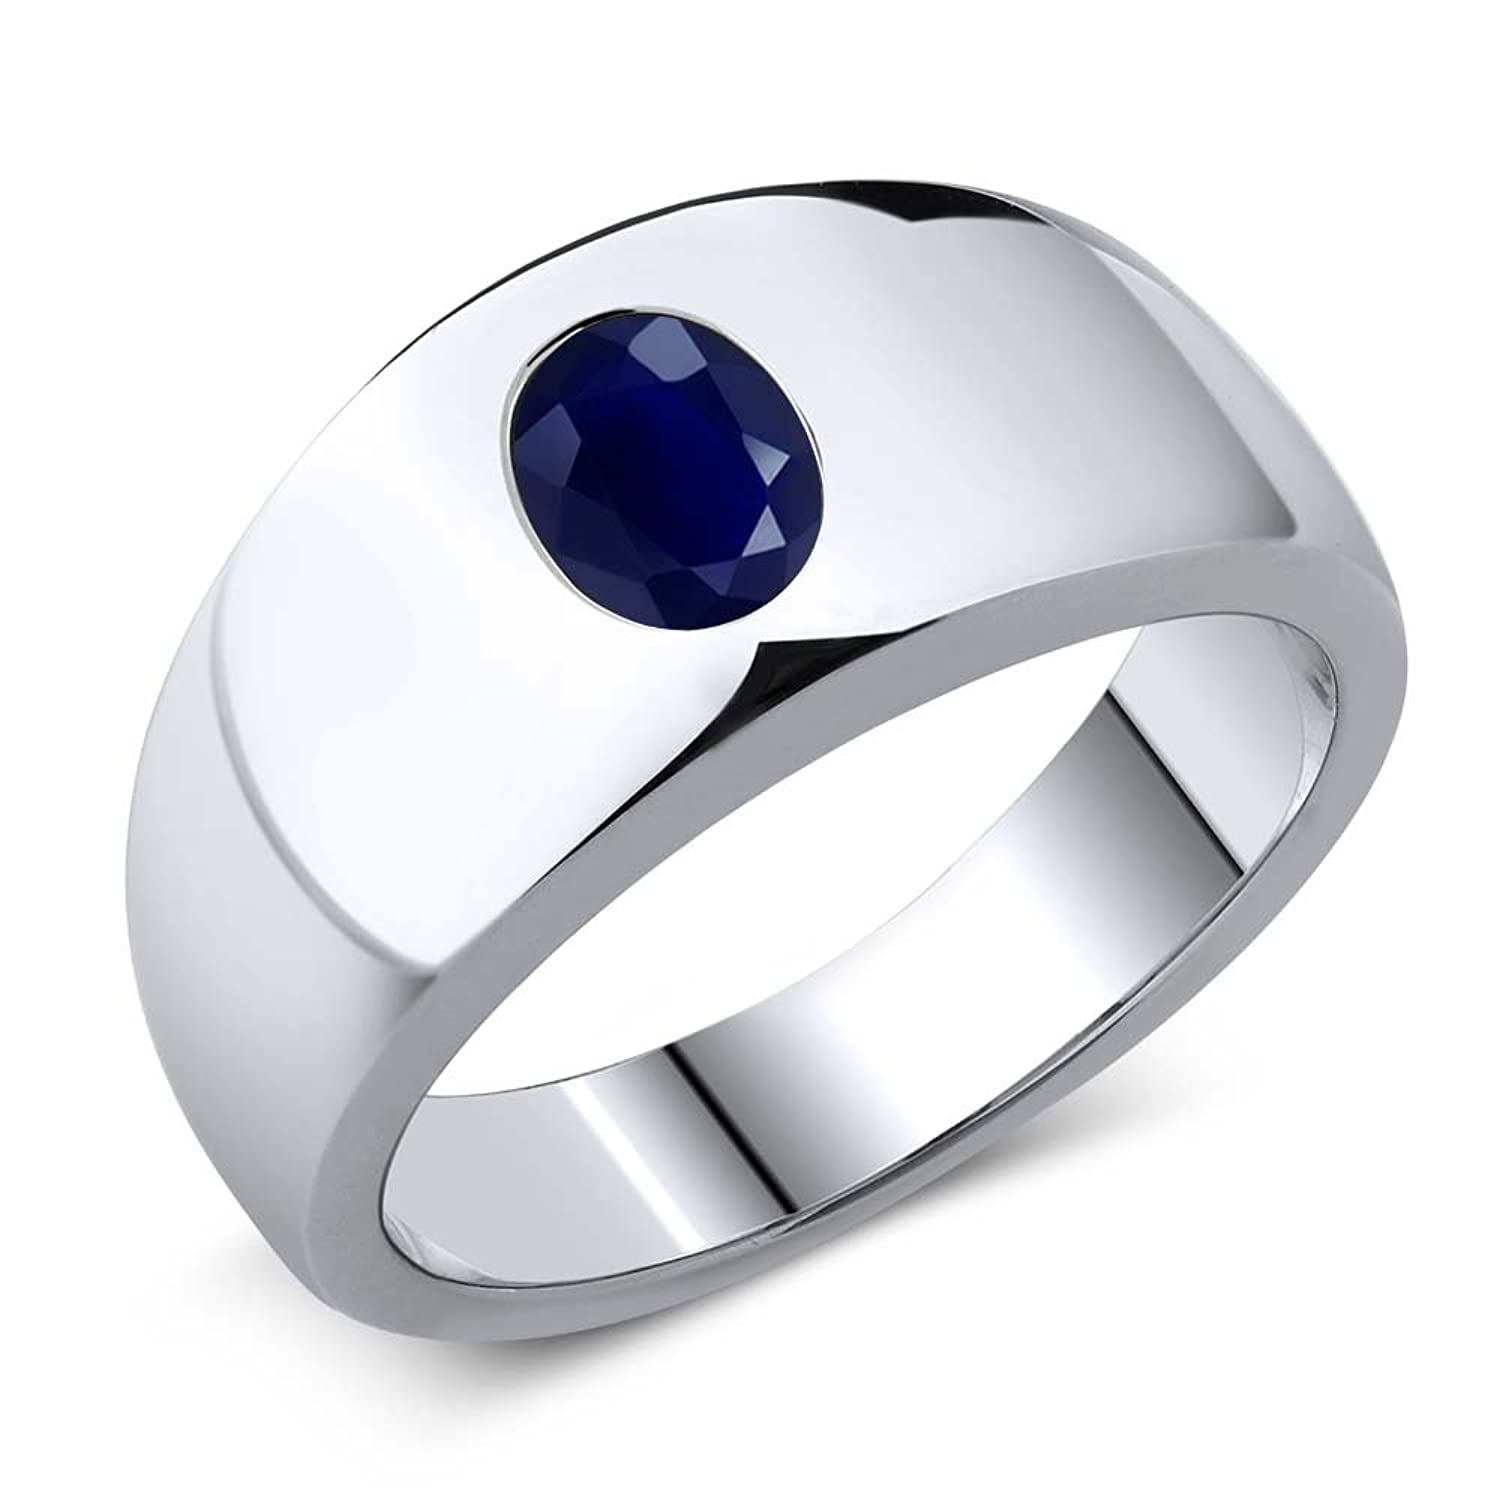 1.79 Ct Oval Natural Blue SI1/SI2 Sapphire 925 Sterling Silver Men's Ring ( Available in size 7, 8, 9, 10, 11, 12, 13)